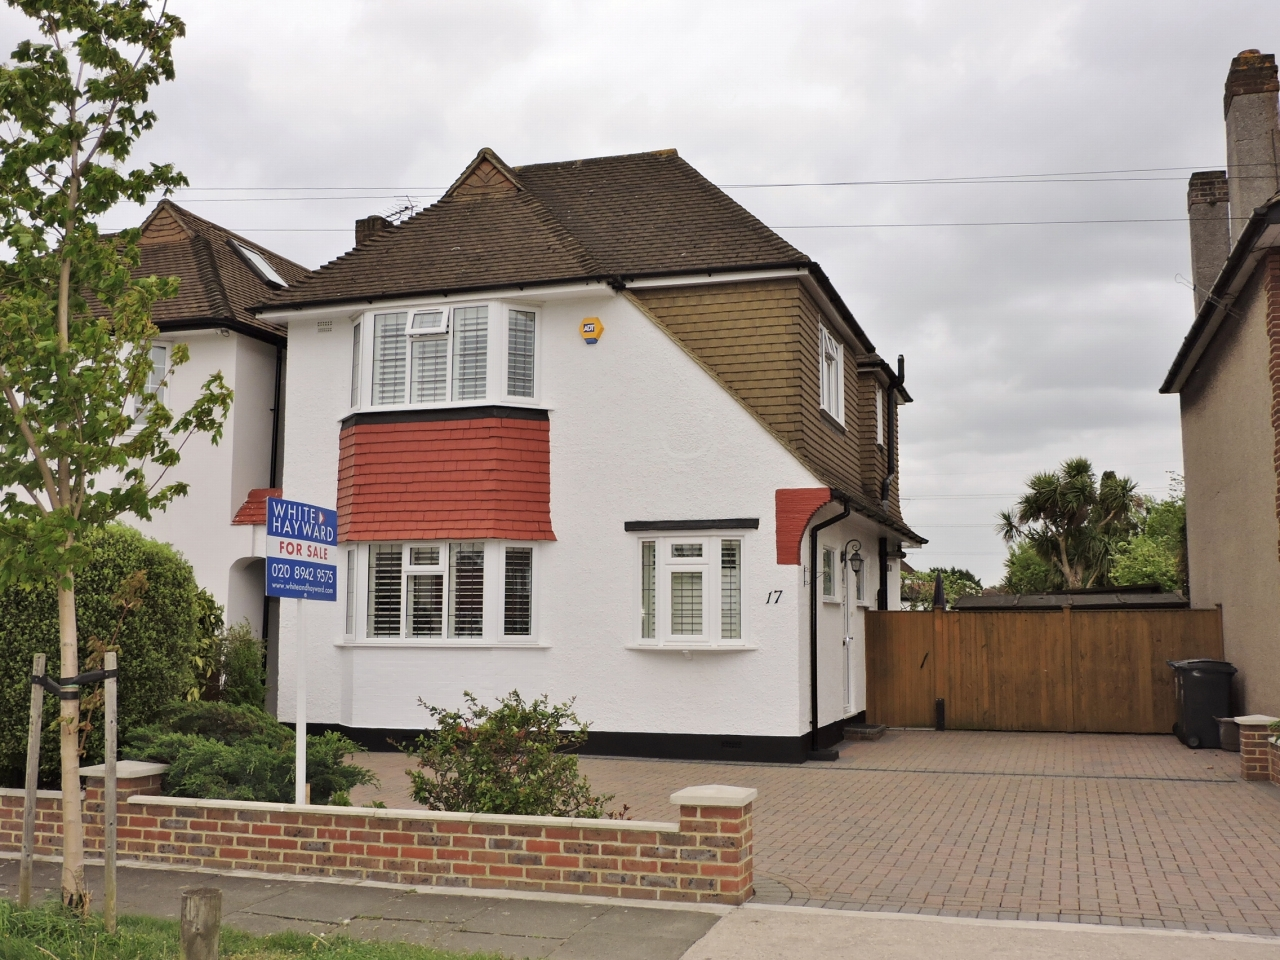 4 bedroom detached house SSTC in New Malden - Photograph 1